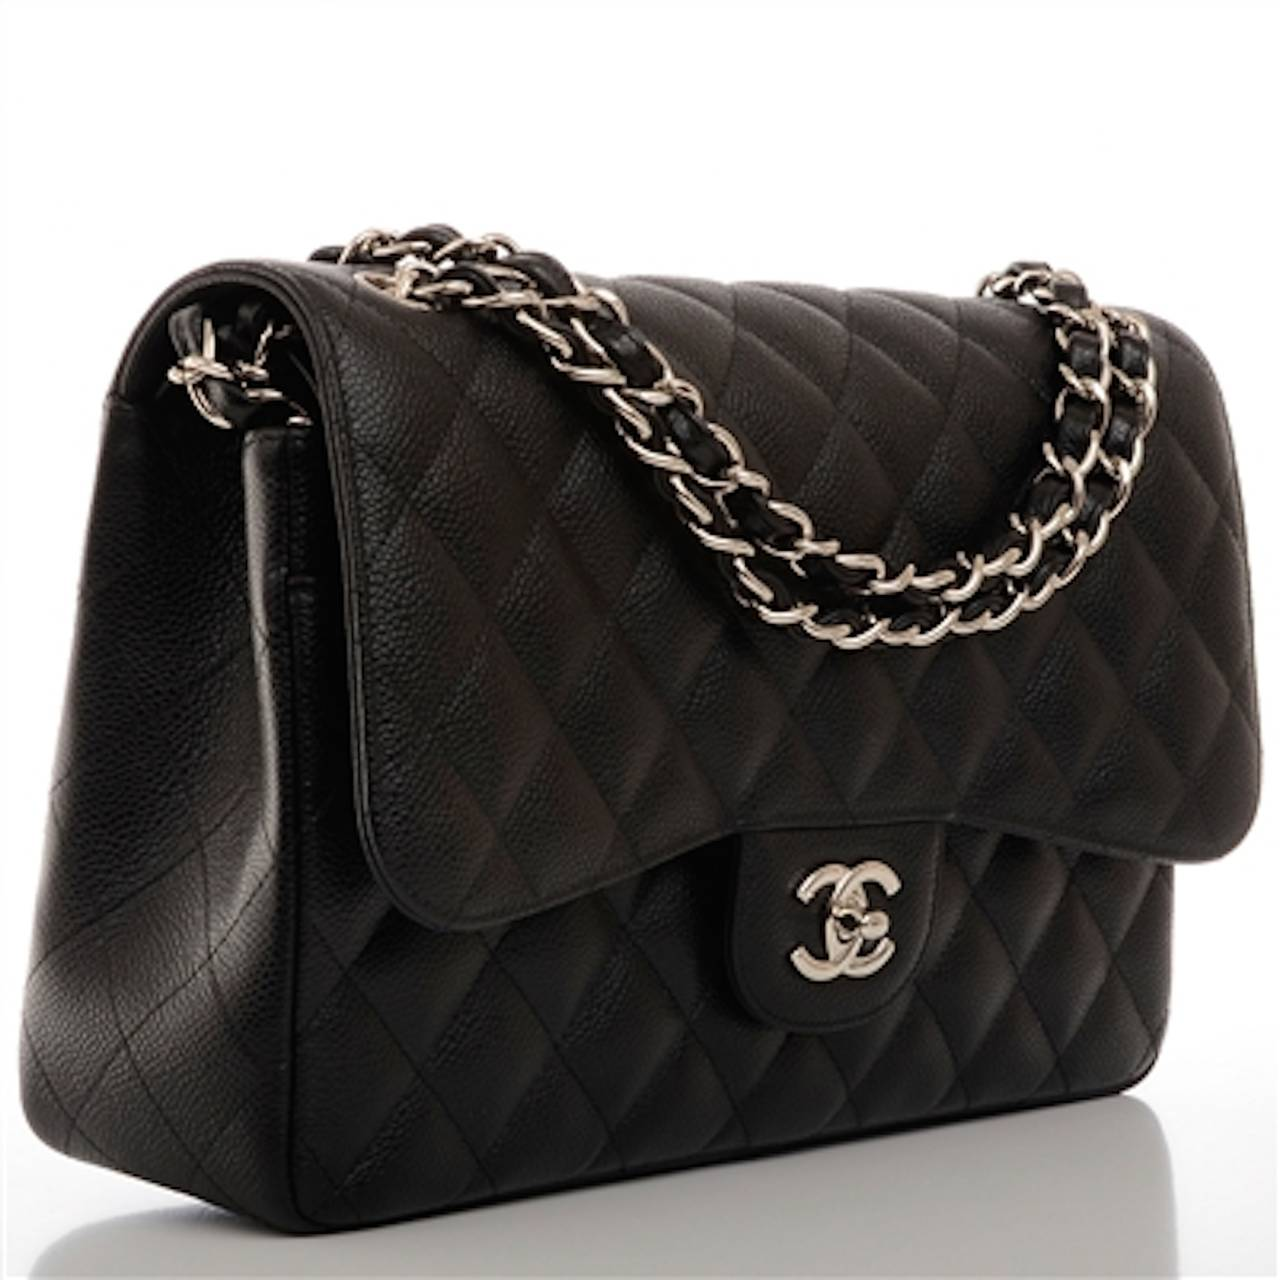 1d20e2637975 Chanel Black Quilted Caviar Jumbo Classic Flap Bag | Mount Mercy ...